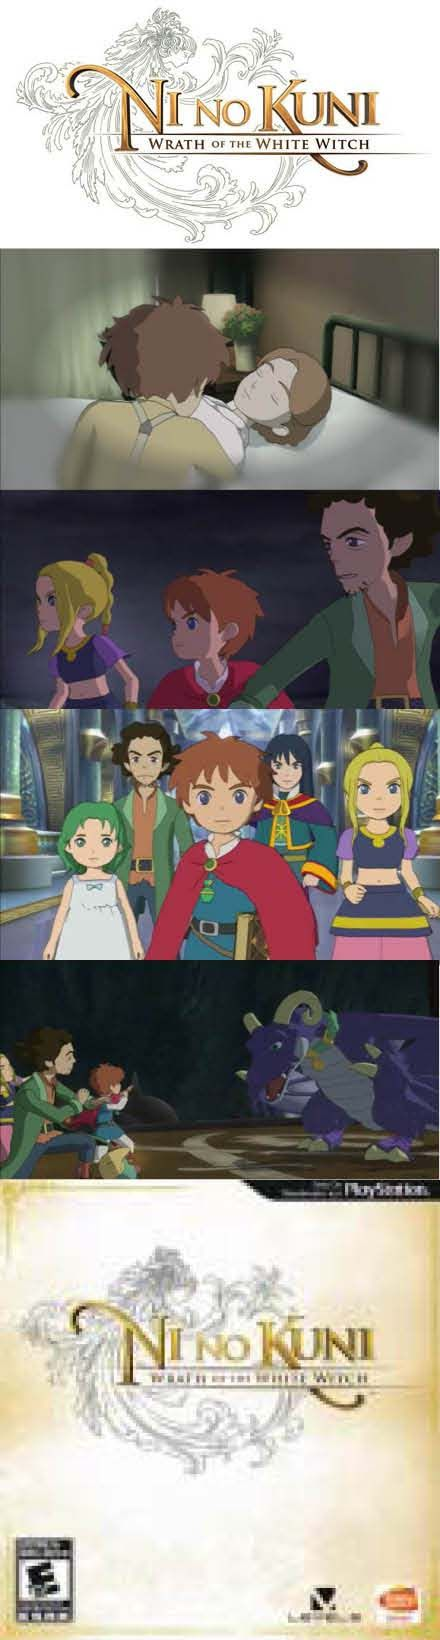 #NiNoKuni Wrath of the White Witch is a great modern classic #RPG! http://www.levelgamingground.com/ni-no-kuni-wrath-of-the-white-witch-review.html